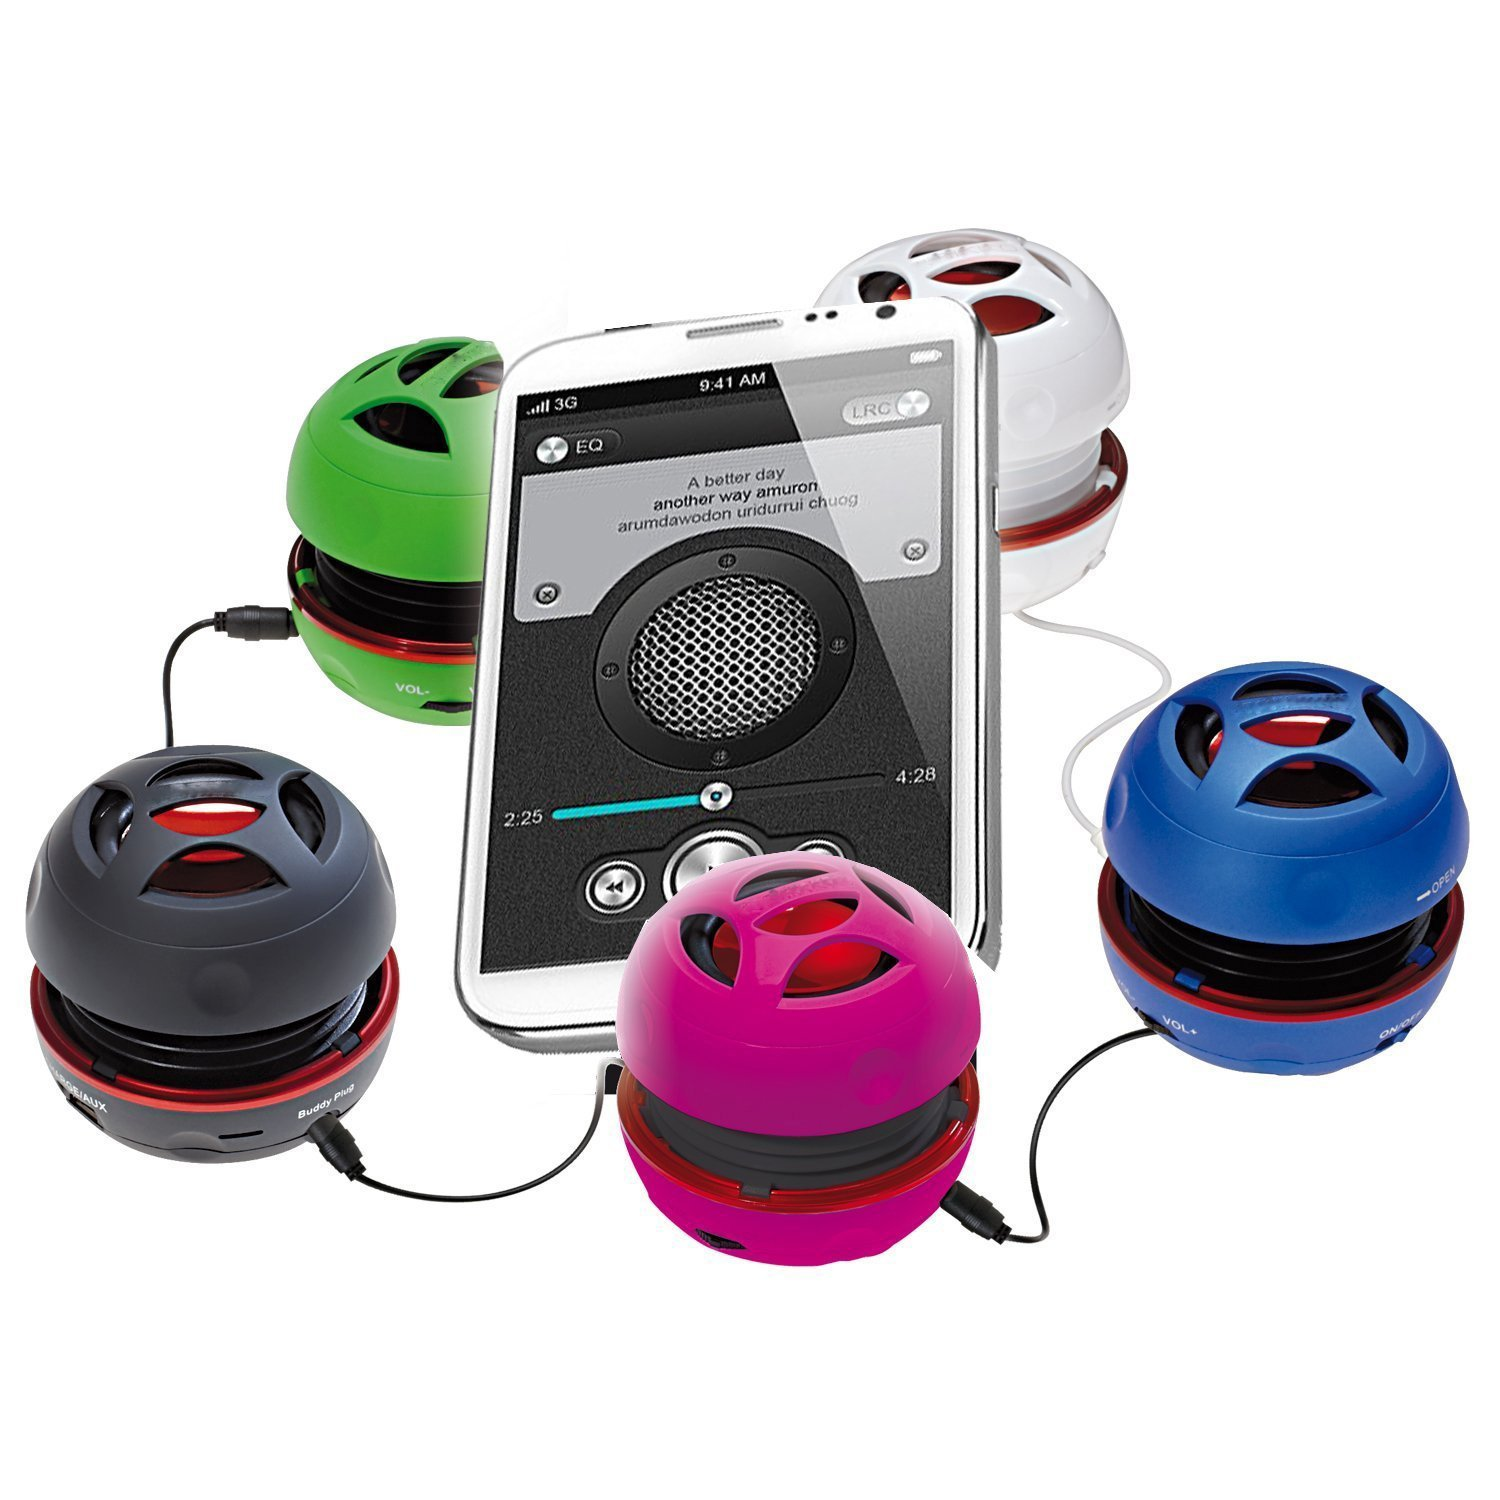 I-VOM Expandable BASS Resonator + Mini Speaker for iPhone/iPad/iPod/MP3 Player/Laptop - Black by I-VOM (Image #6)